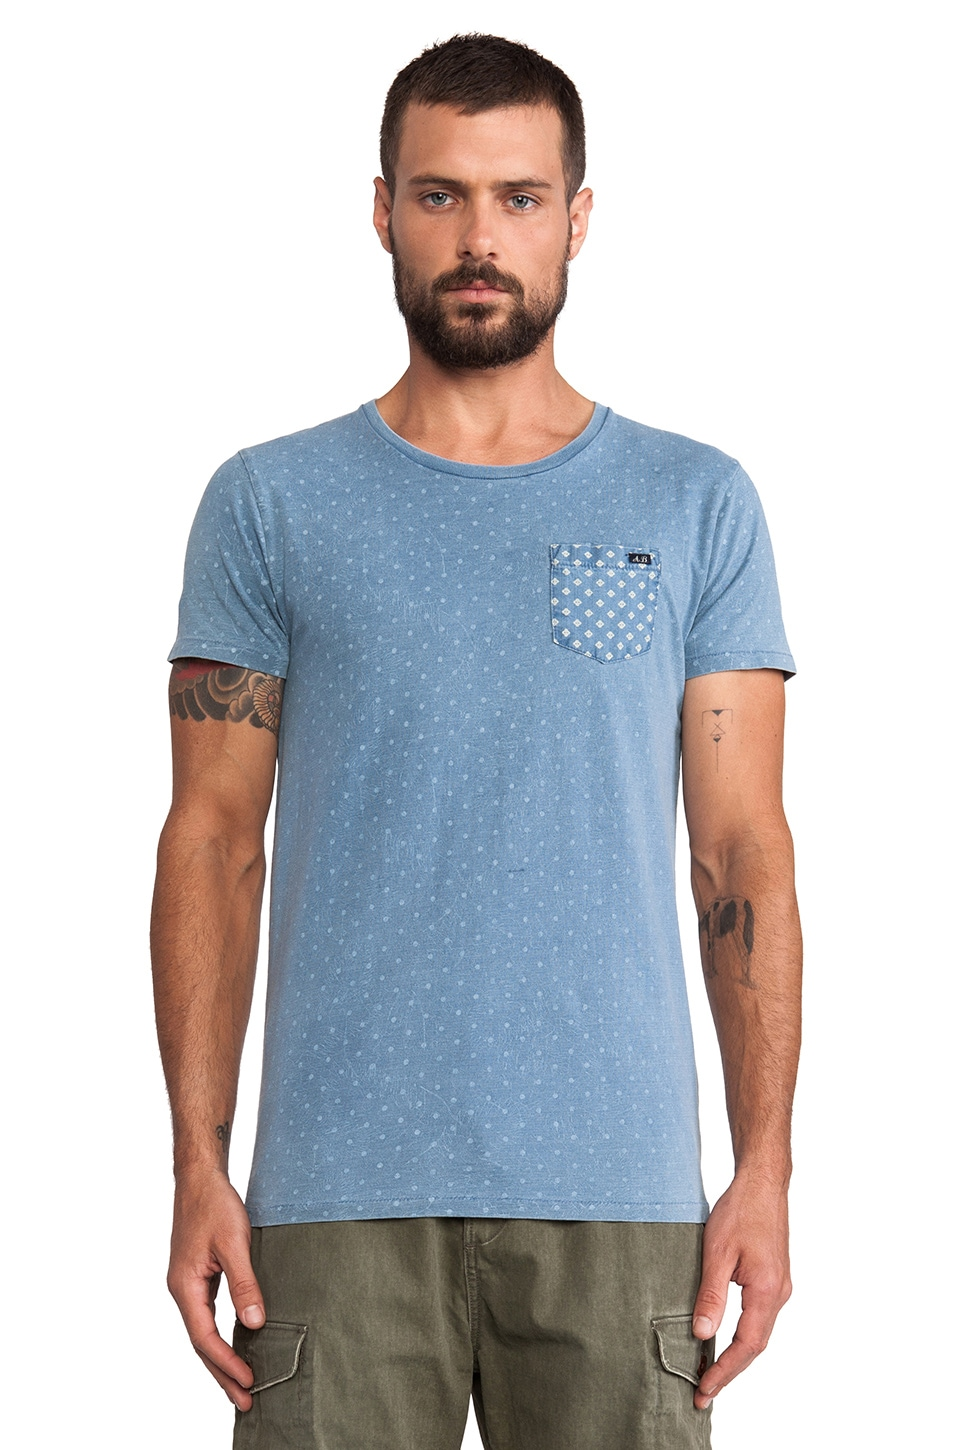 Scotch & Soda Amsterdams Blauw Dandy Indigo Allover Tee in Blue